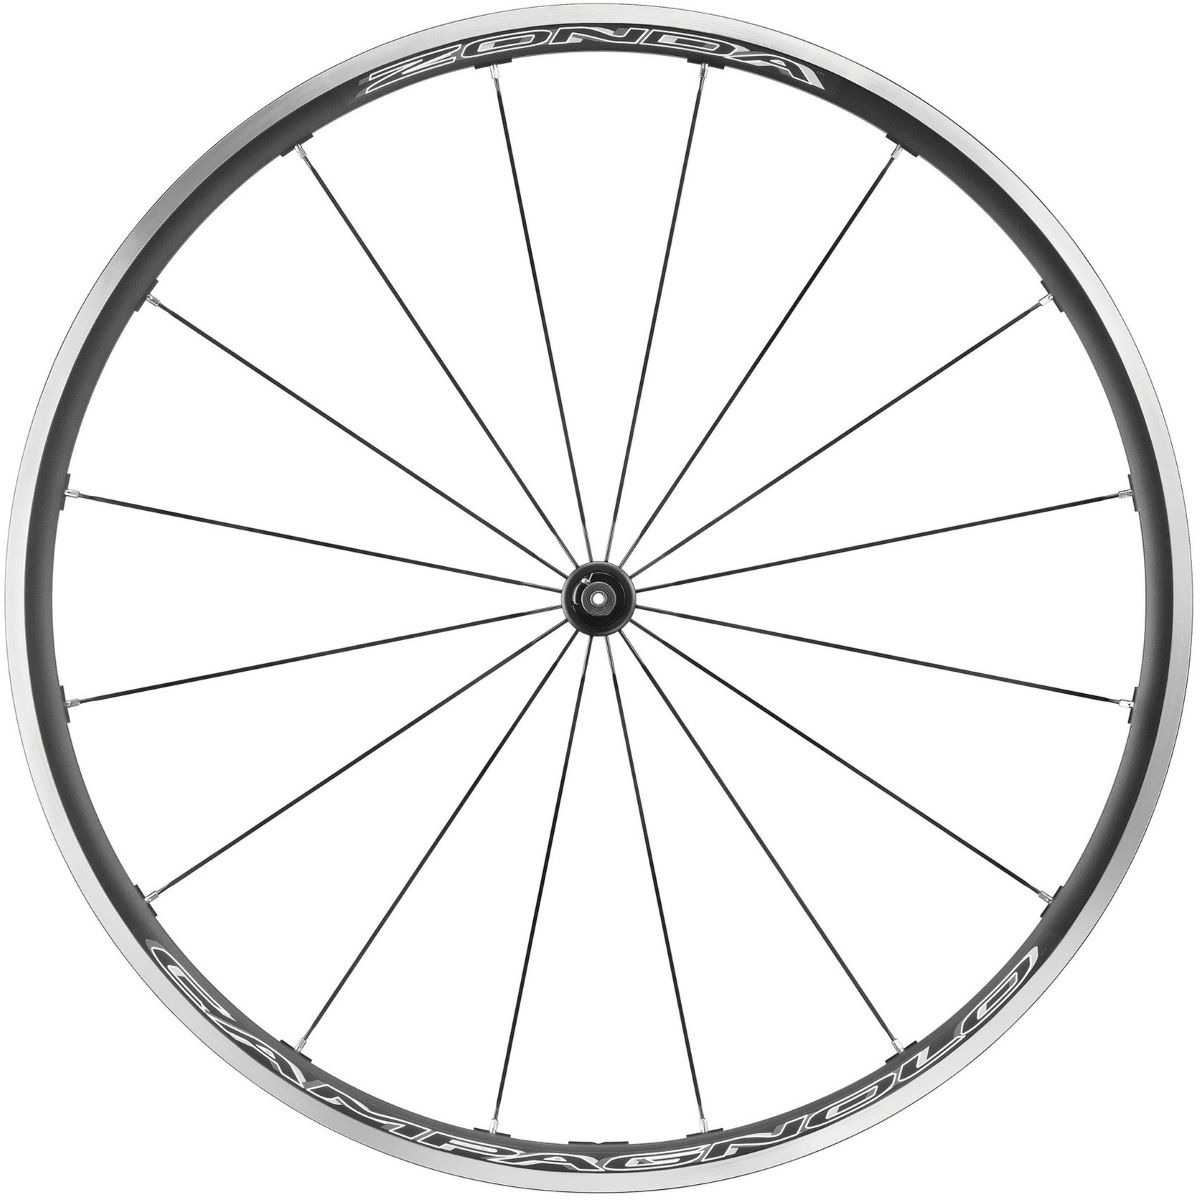 Campagnolo Zonda C17 Front Road Wheel   Performance Wheels